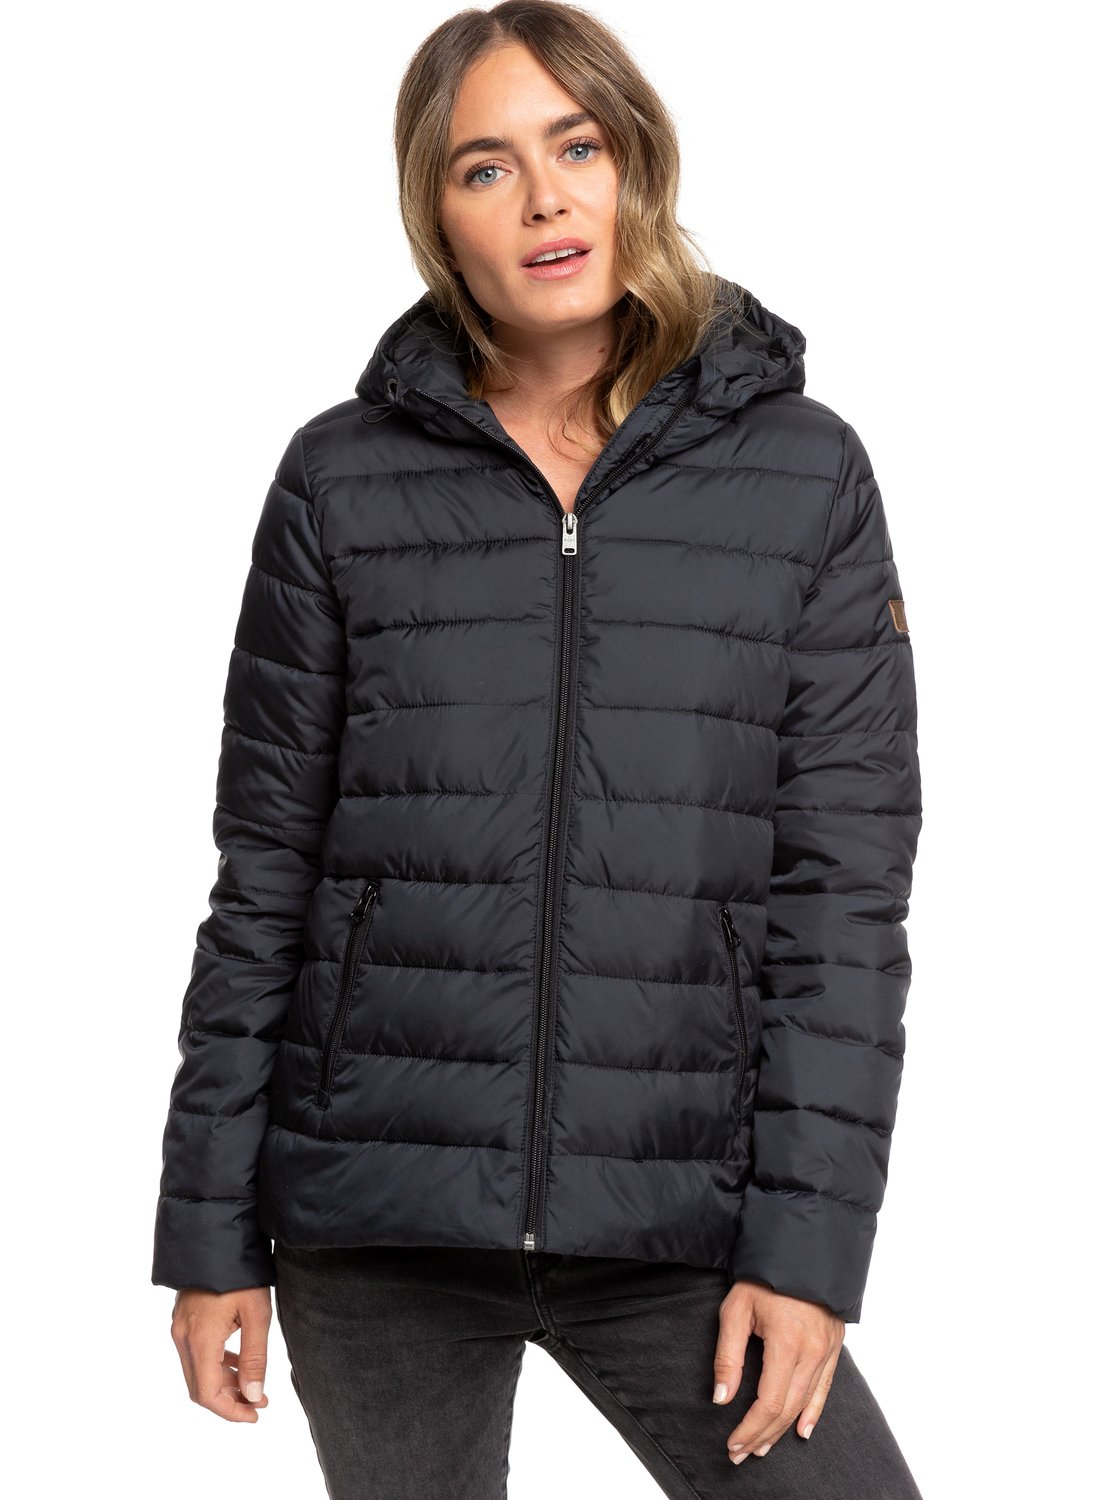 005e80b63ac7 Roxy™ Rock Peak - Water Repellent Padded Jacket - Women | eBay